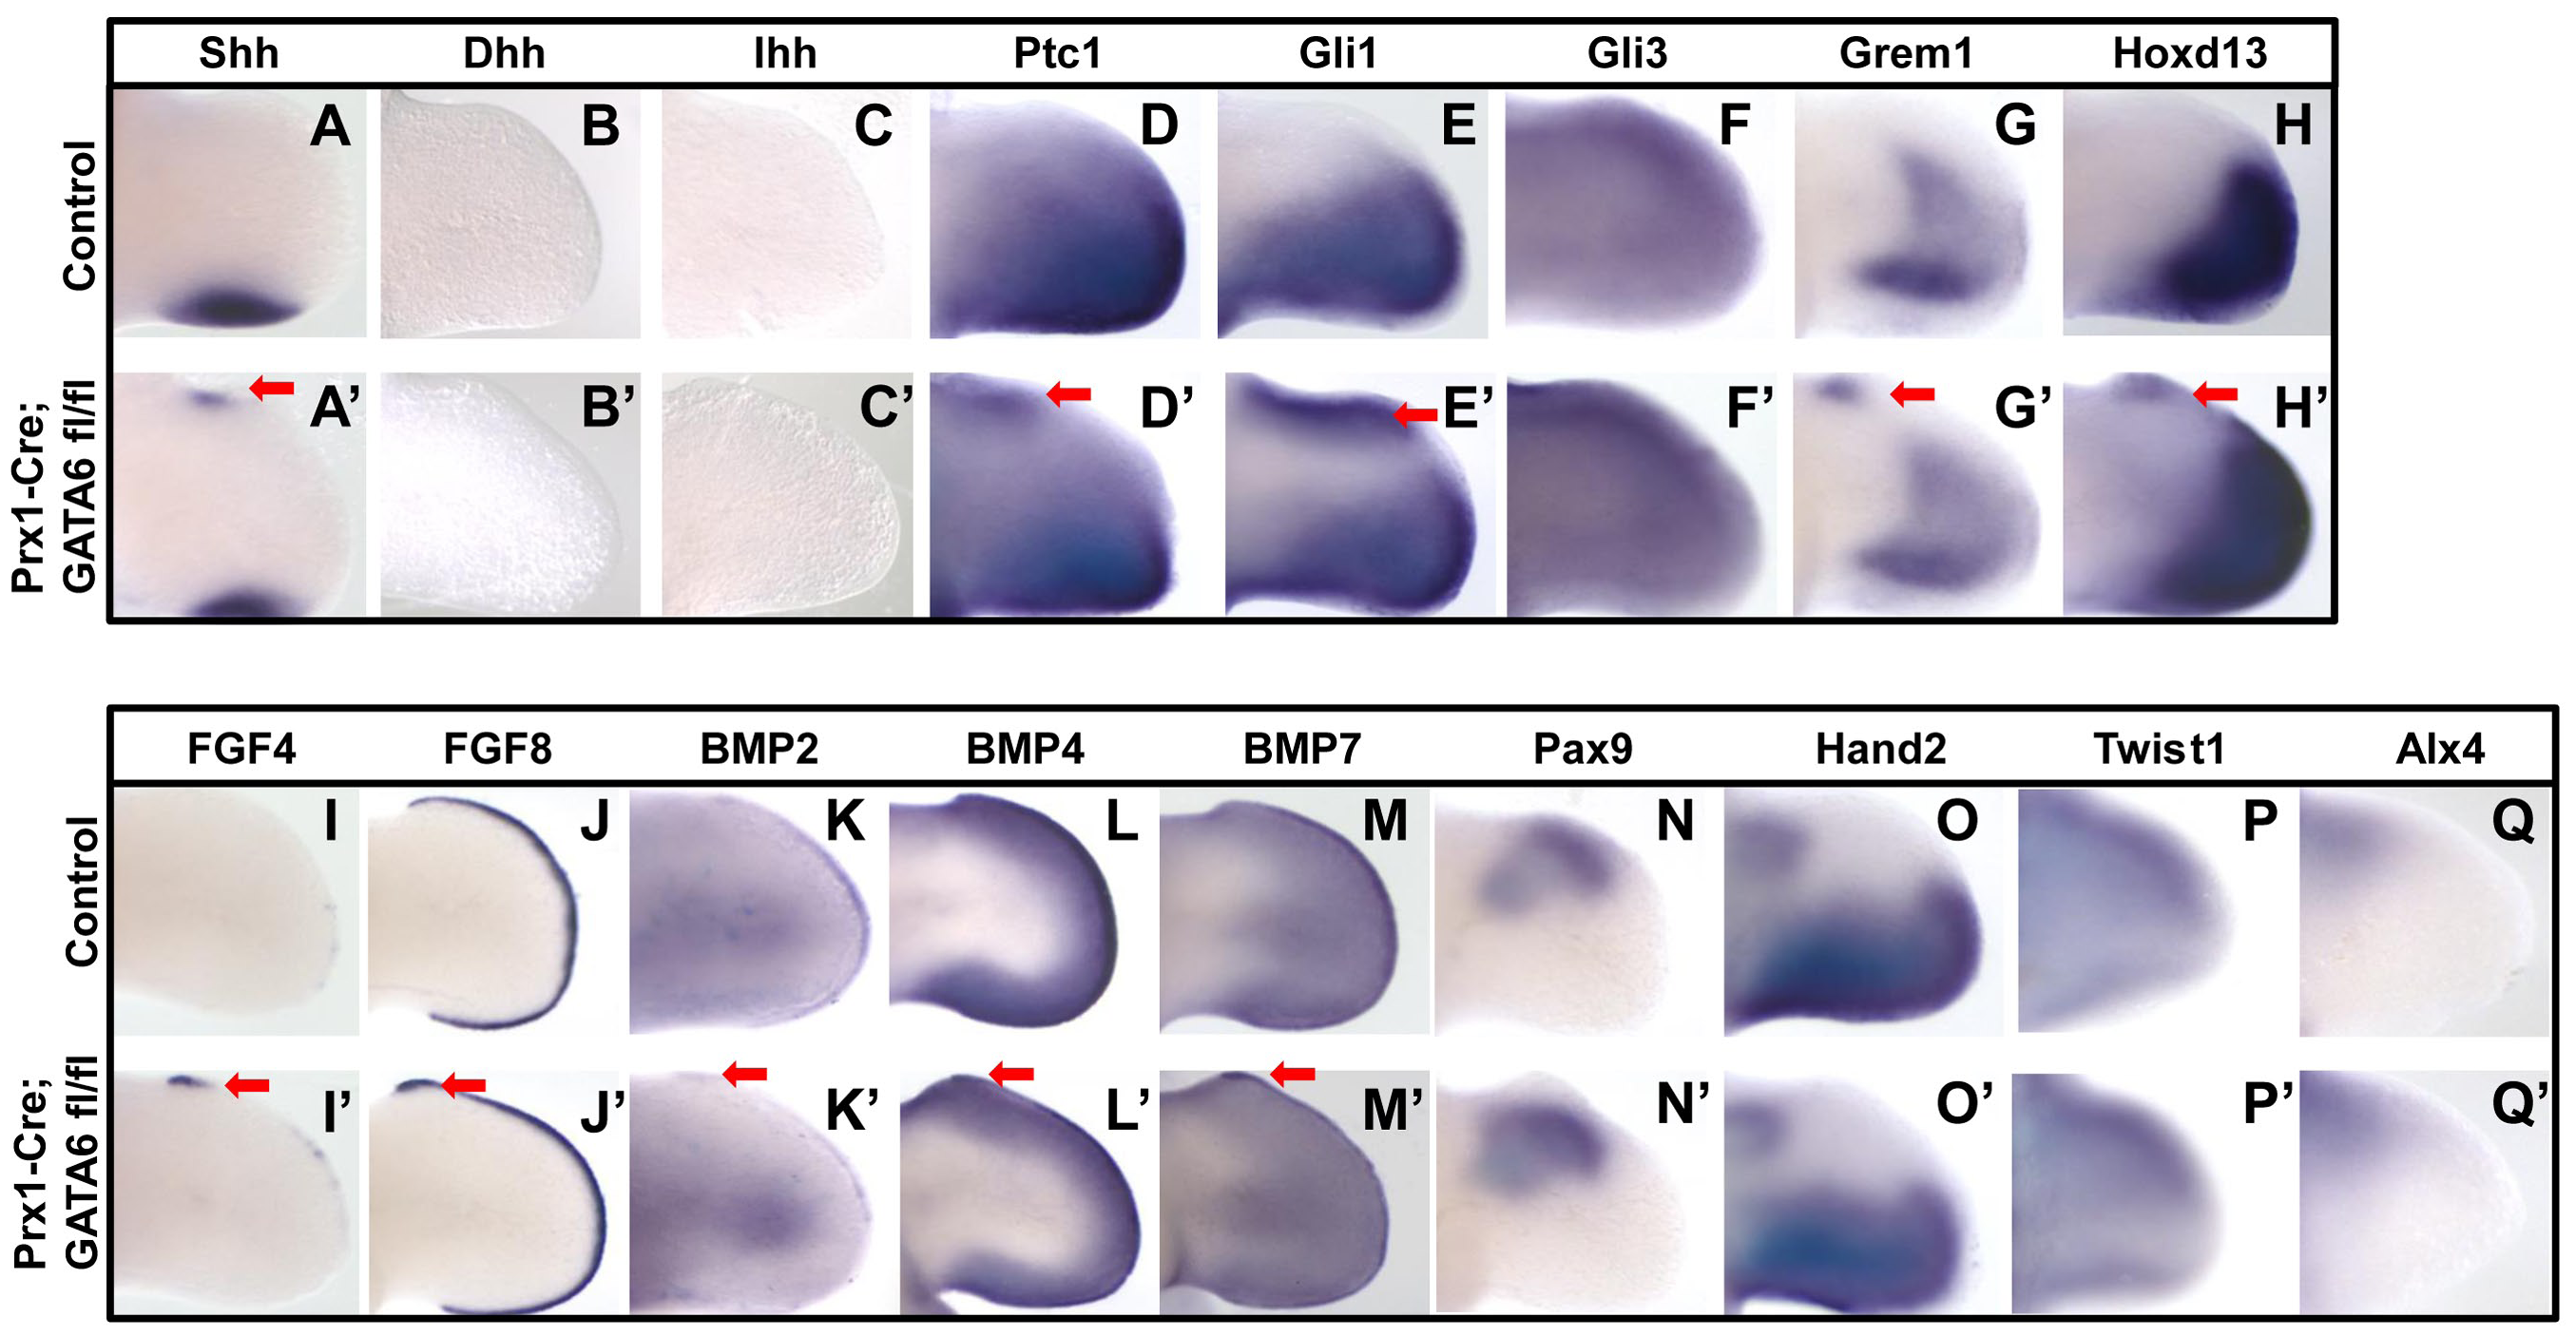 Loss of GATA6 in the hindlimb bud induces ectopic expression of hedgehog responsive genes.